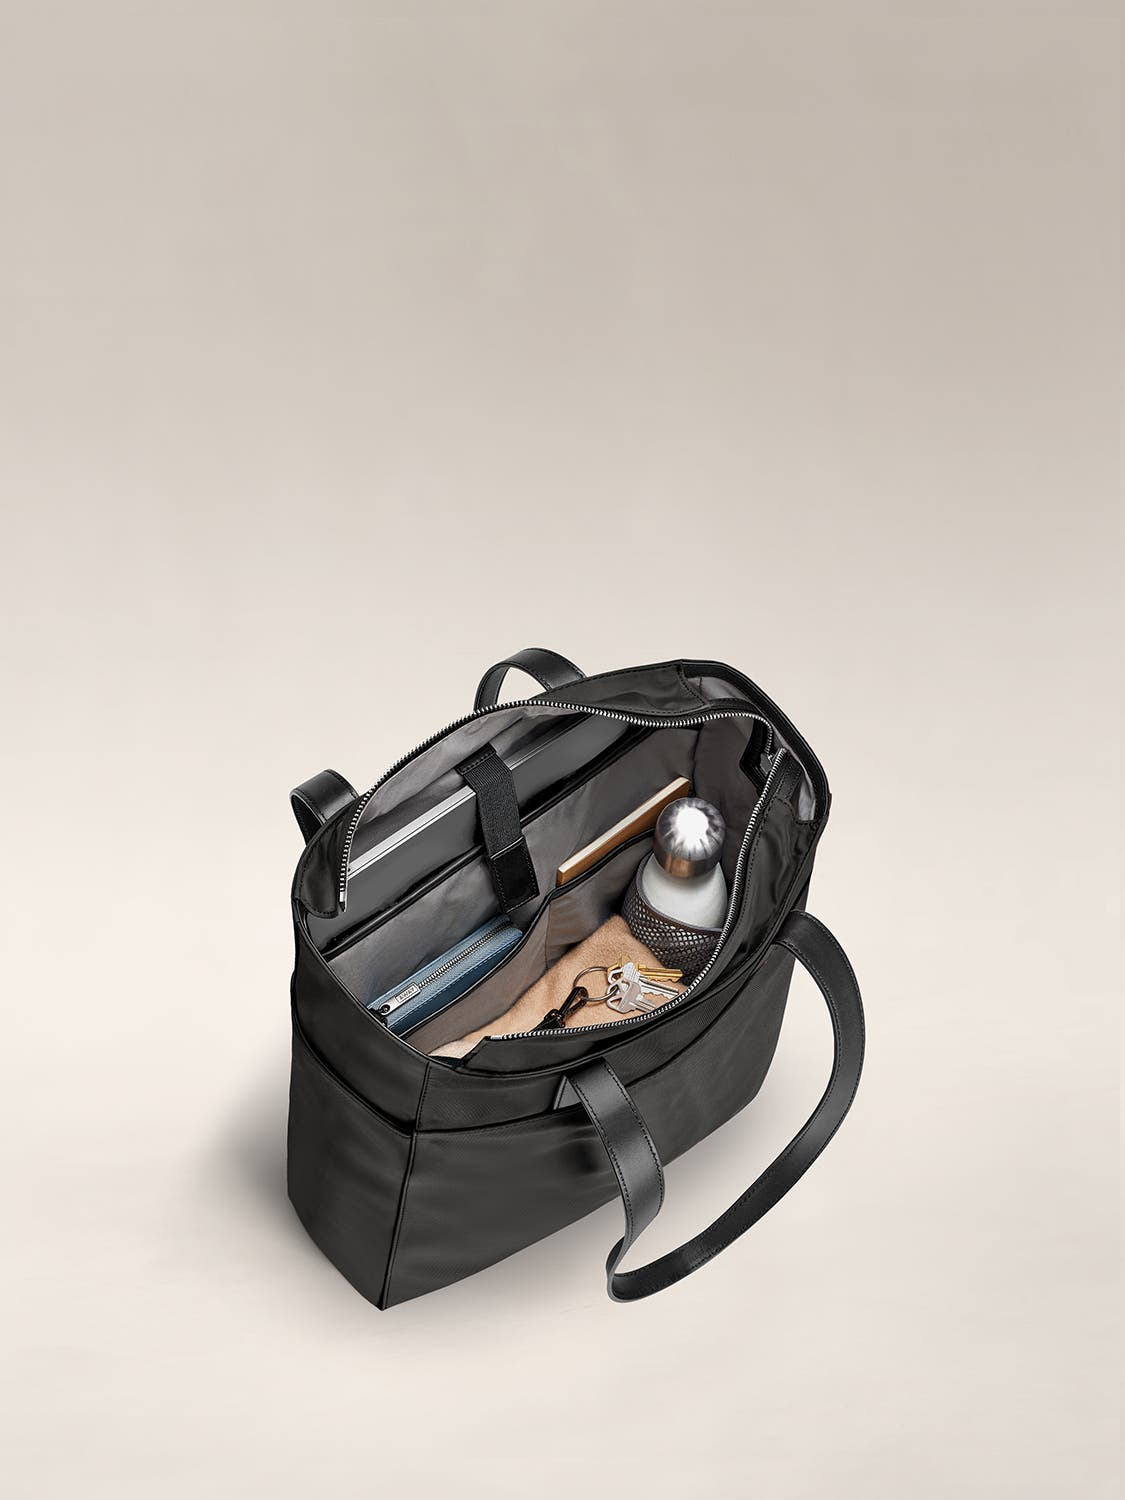 Fully packed and organized internal view of a black tote shoulder bag.